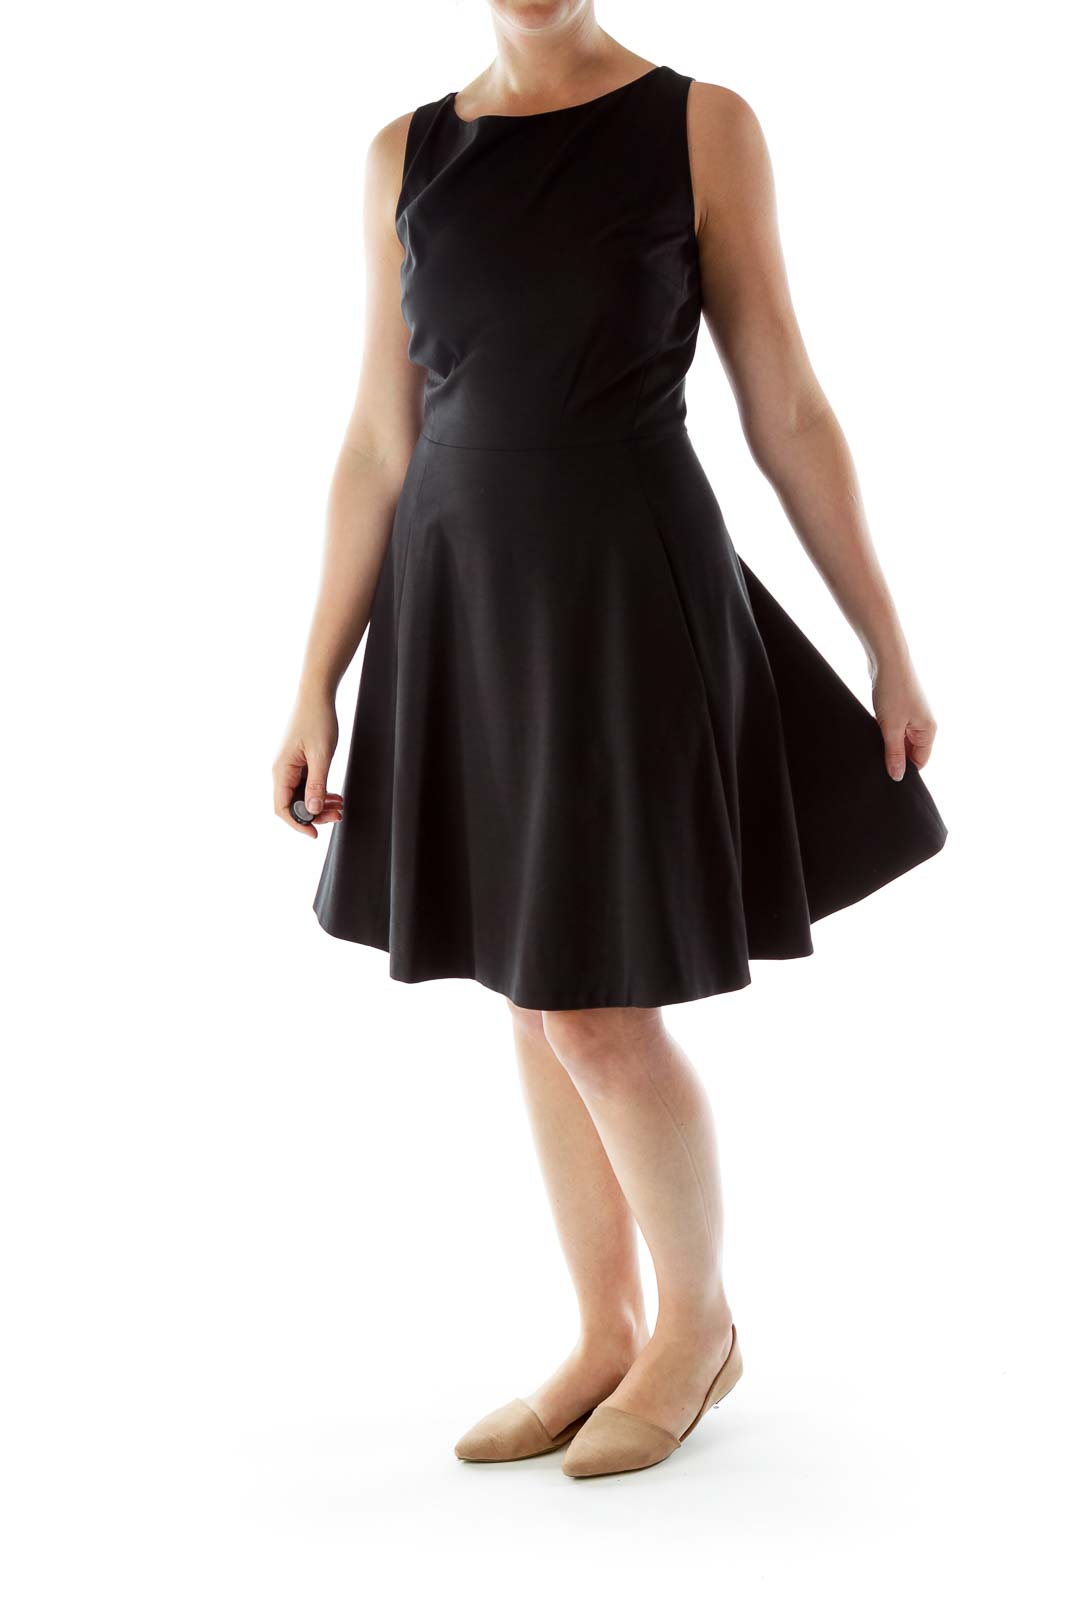 Black Dress with back Bow detailing